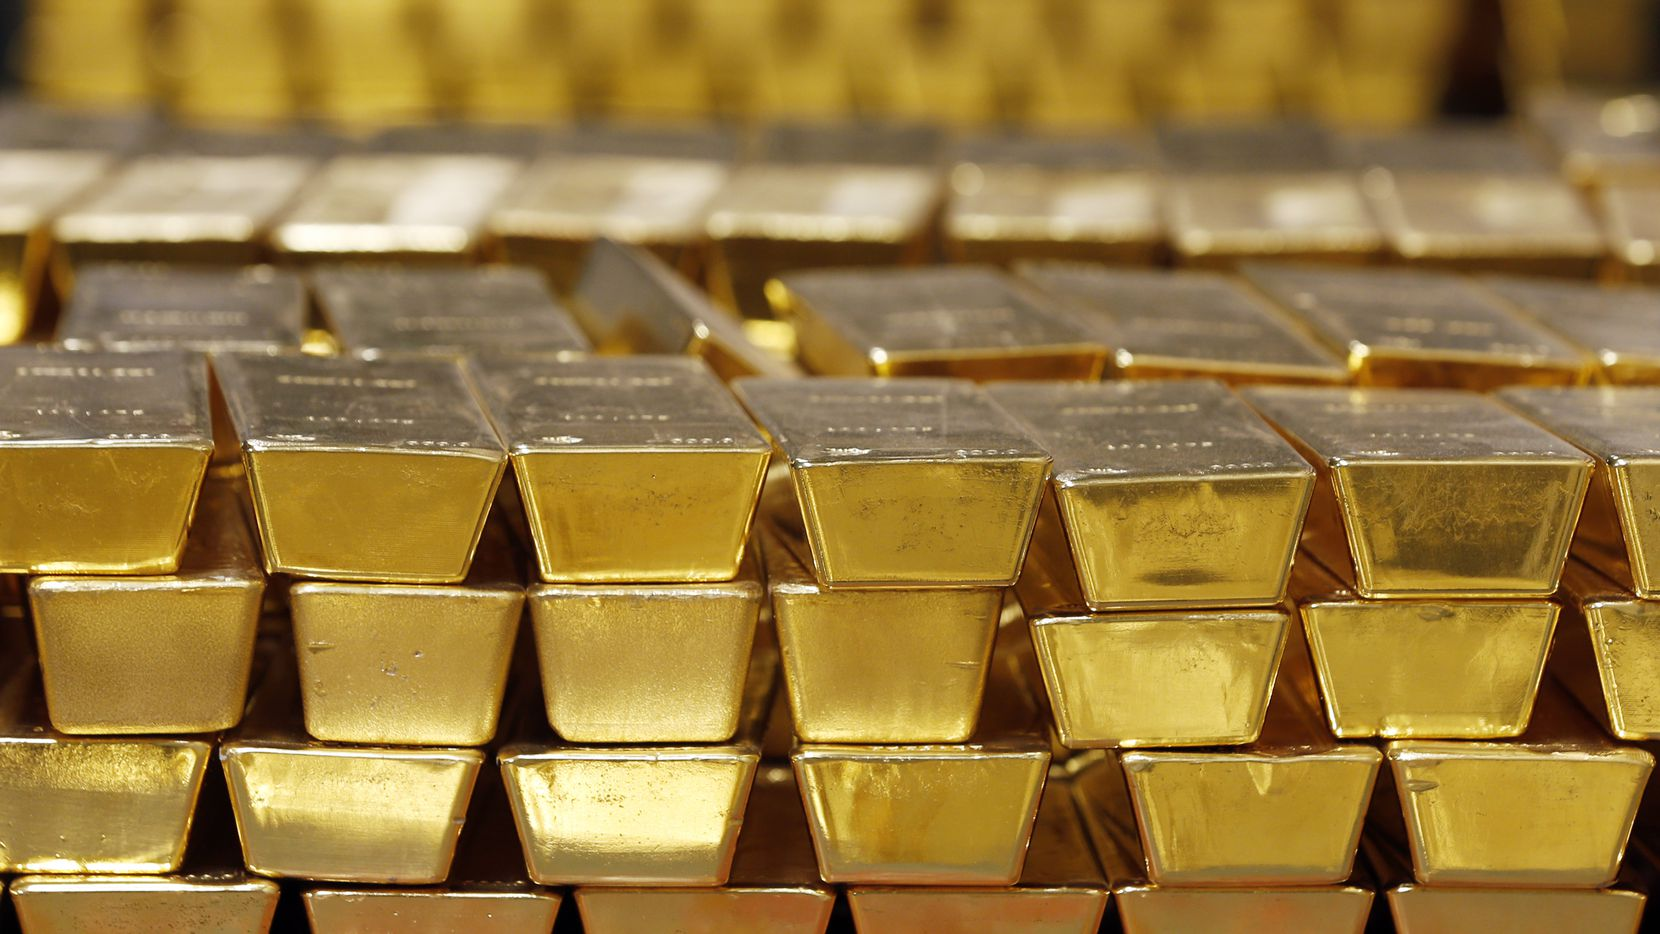 Gold bars are stacked in a vault at the U.S. West Point on July 22, 2014, in West Point, N.Y.